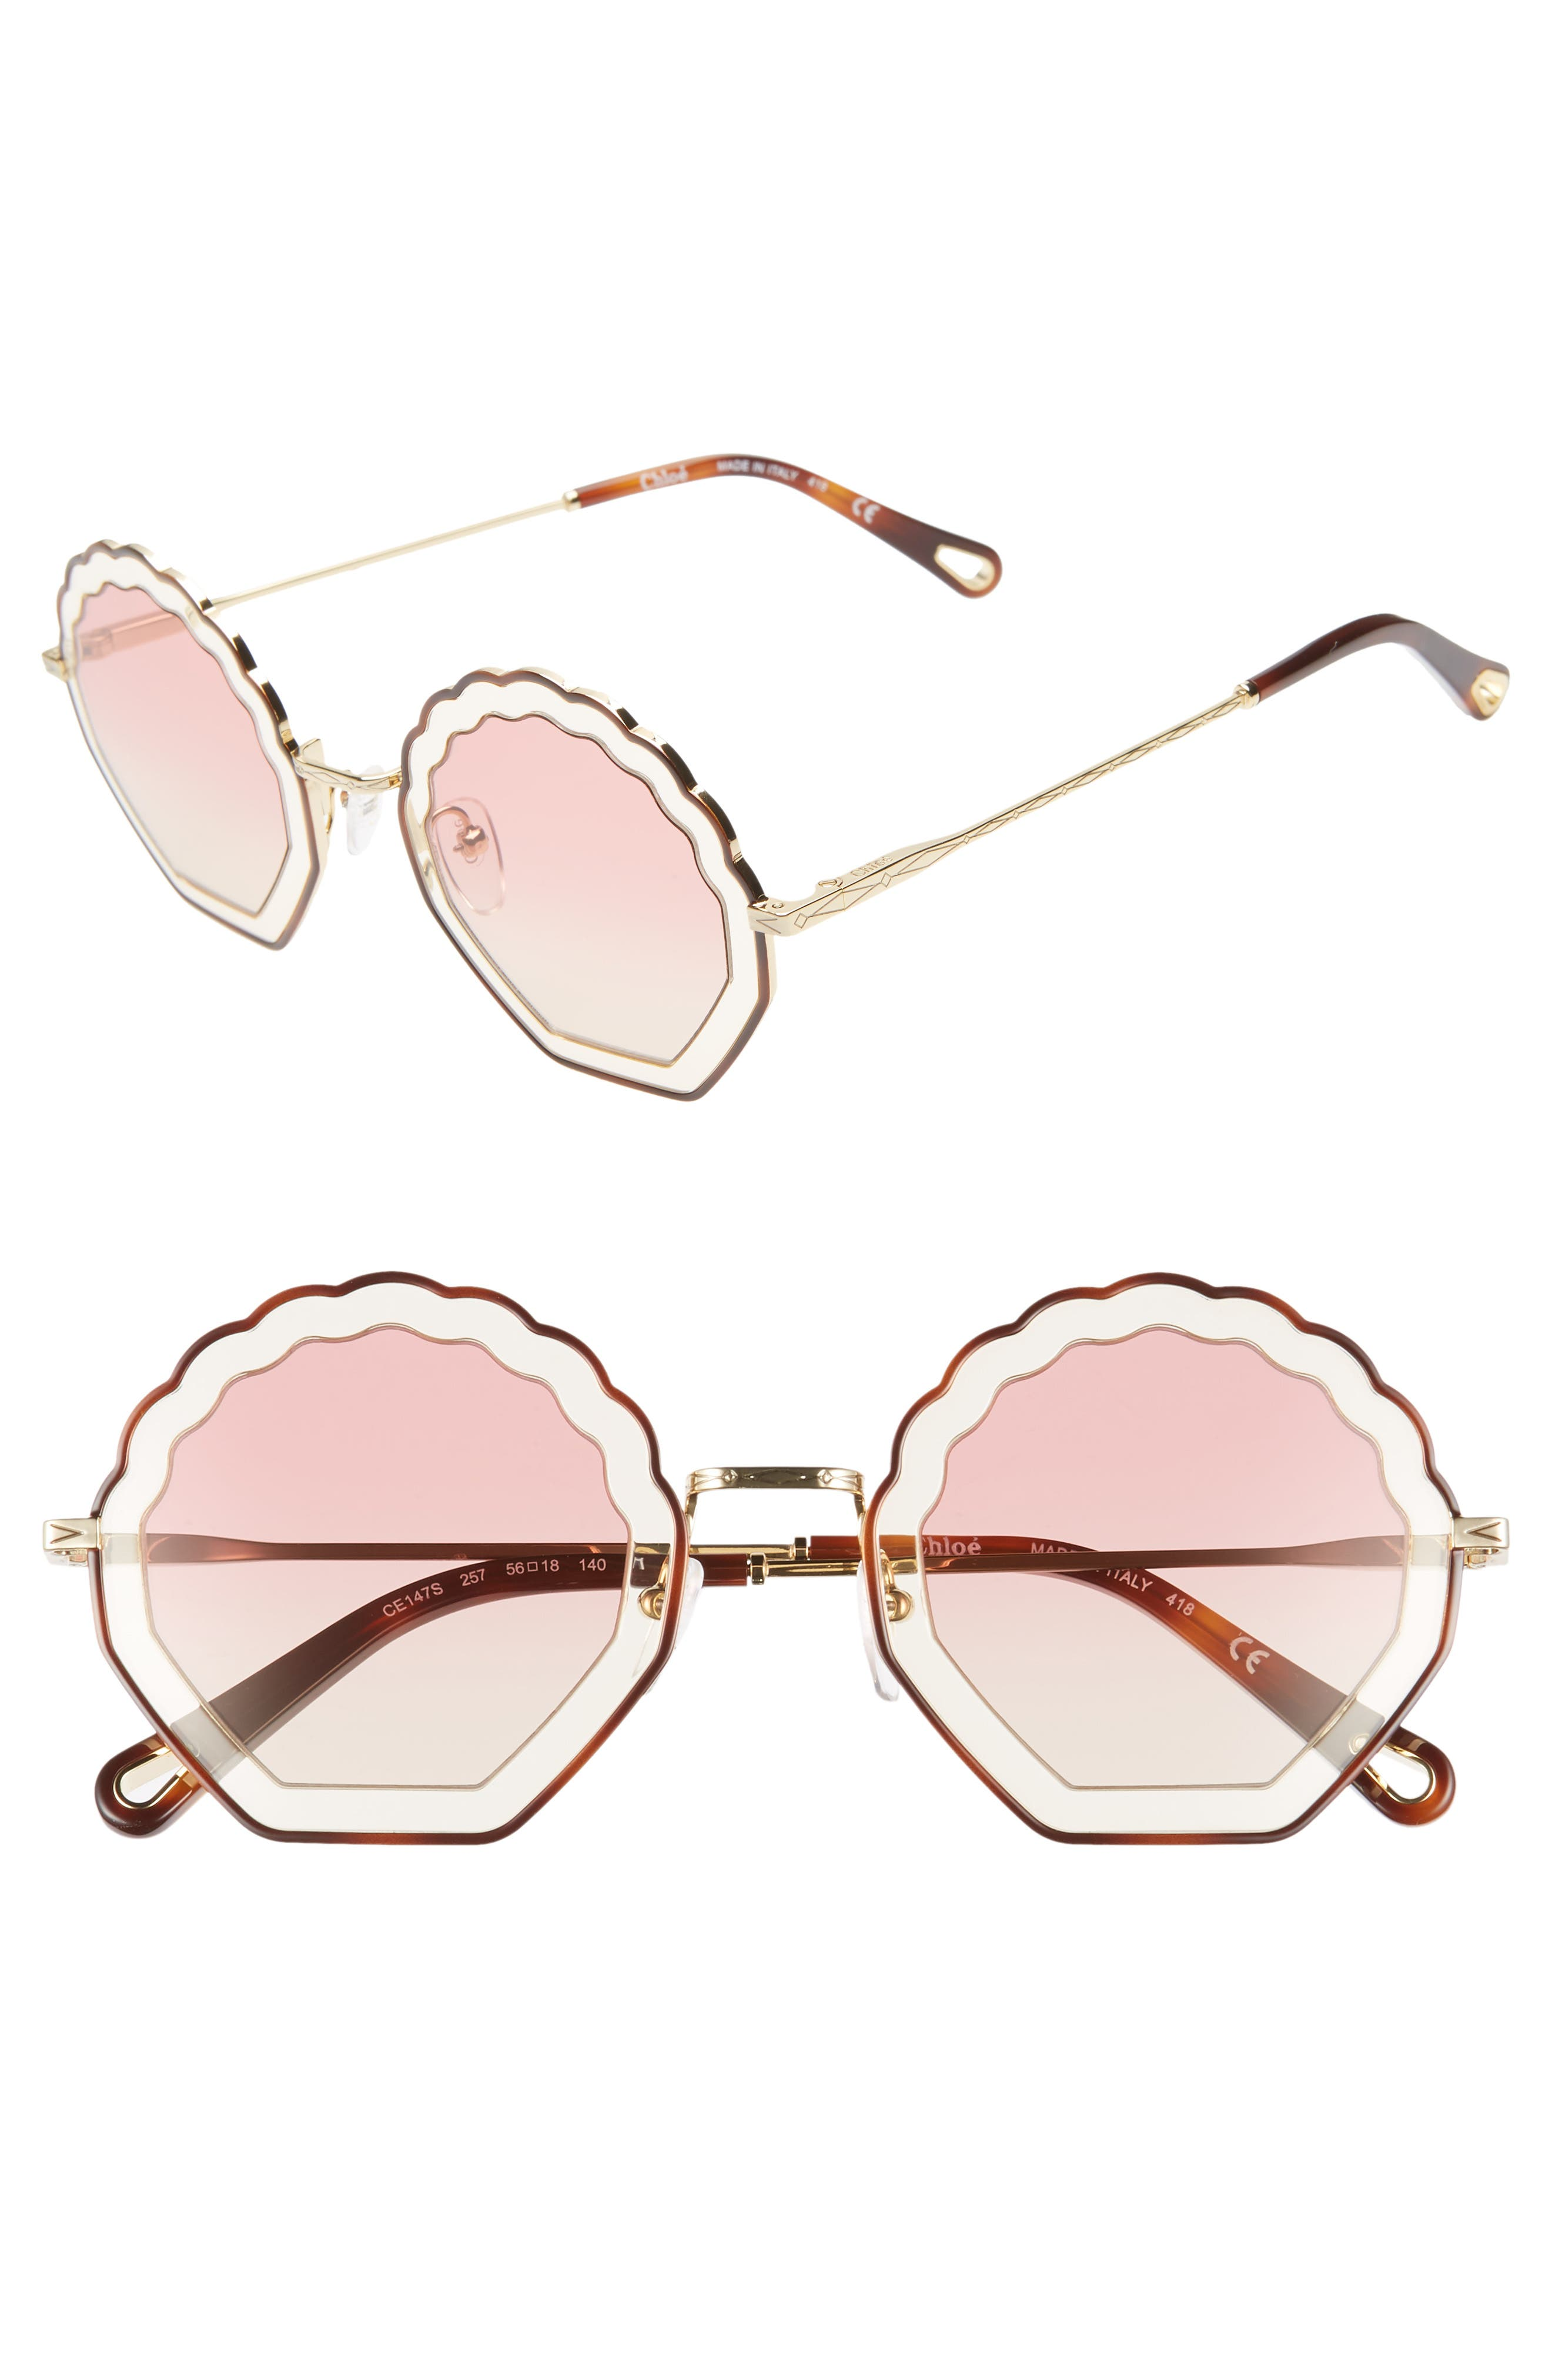 Tally 56mm Scalloped Sunglasses,                             Main thumbnail 1, color,                             HAVANA/ SAND/ GRADIENT ROSE